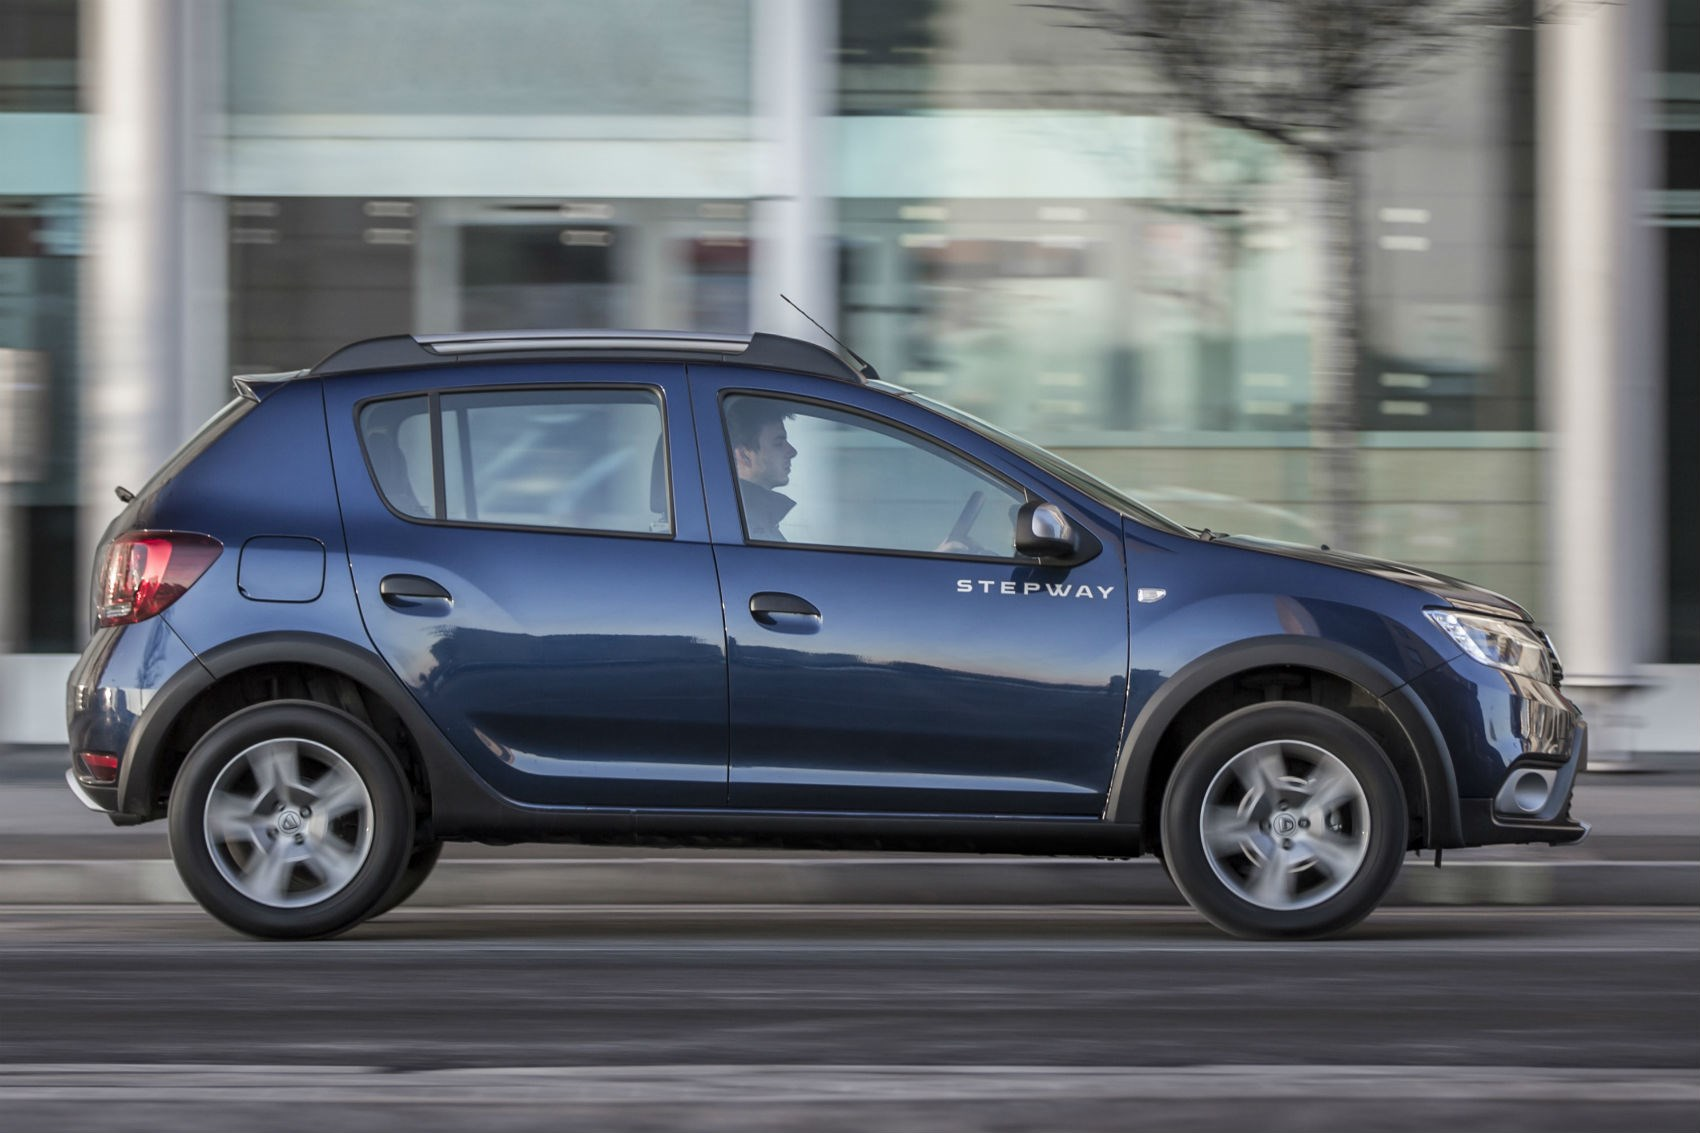 Dacia Sandero Stepway PCP finance